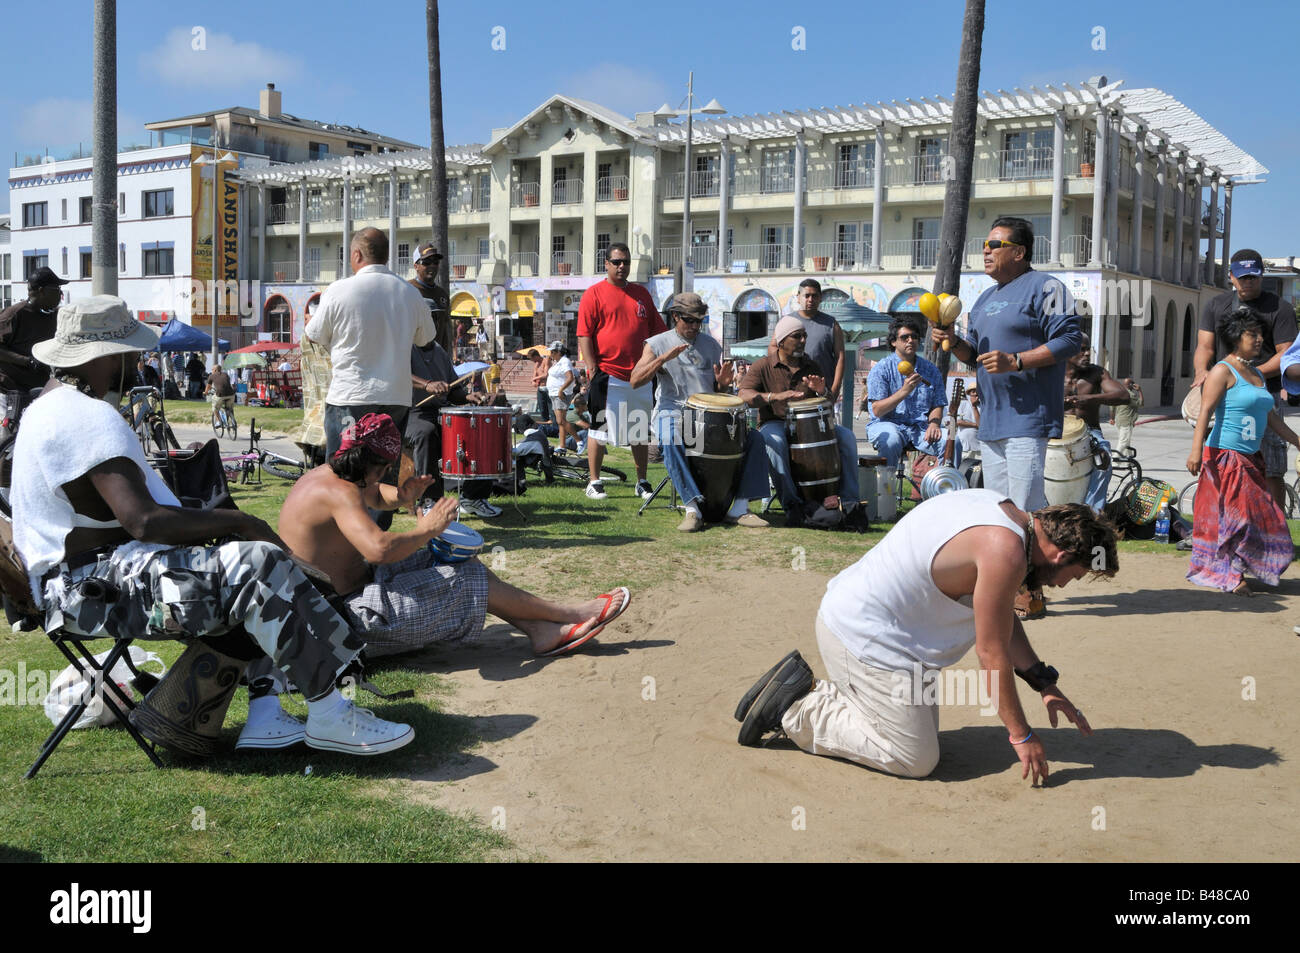 A rhythm session in full swing just off of popular Ocean Front Walk, Venice Beach - Stock Image